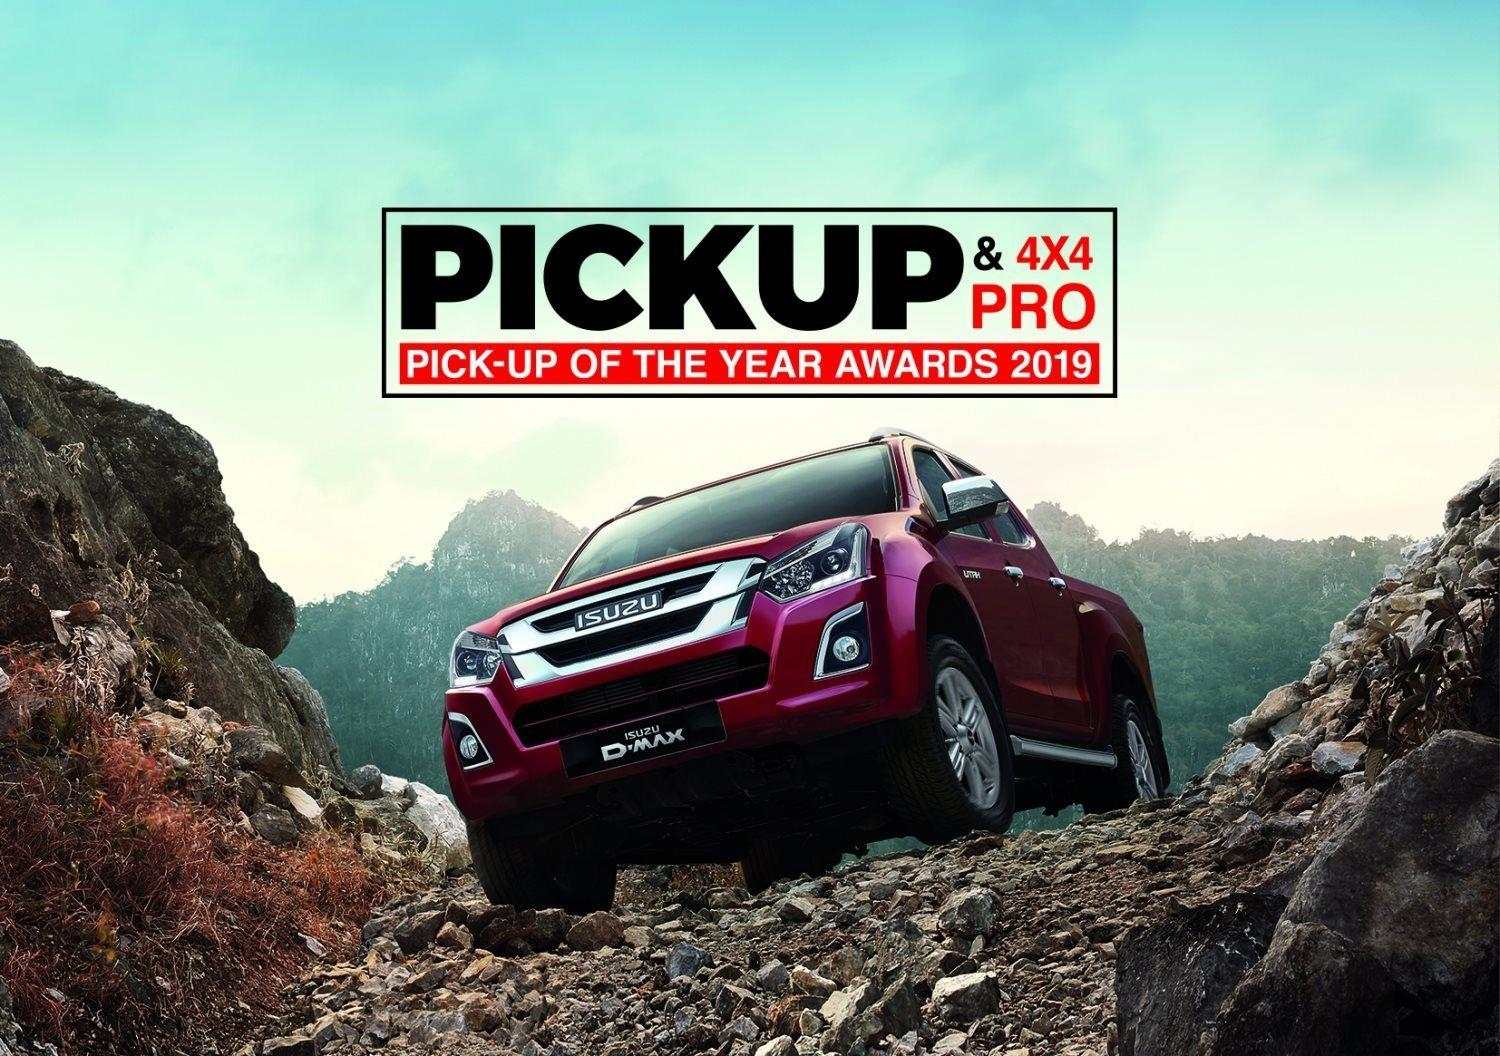 THE ISUZU D-MAX PICKS-UP YET ANOTHER AWARD IN 2019!